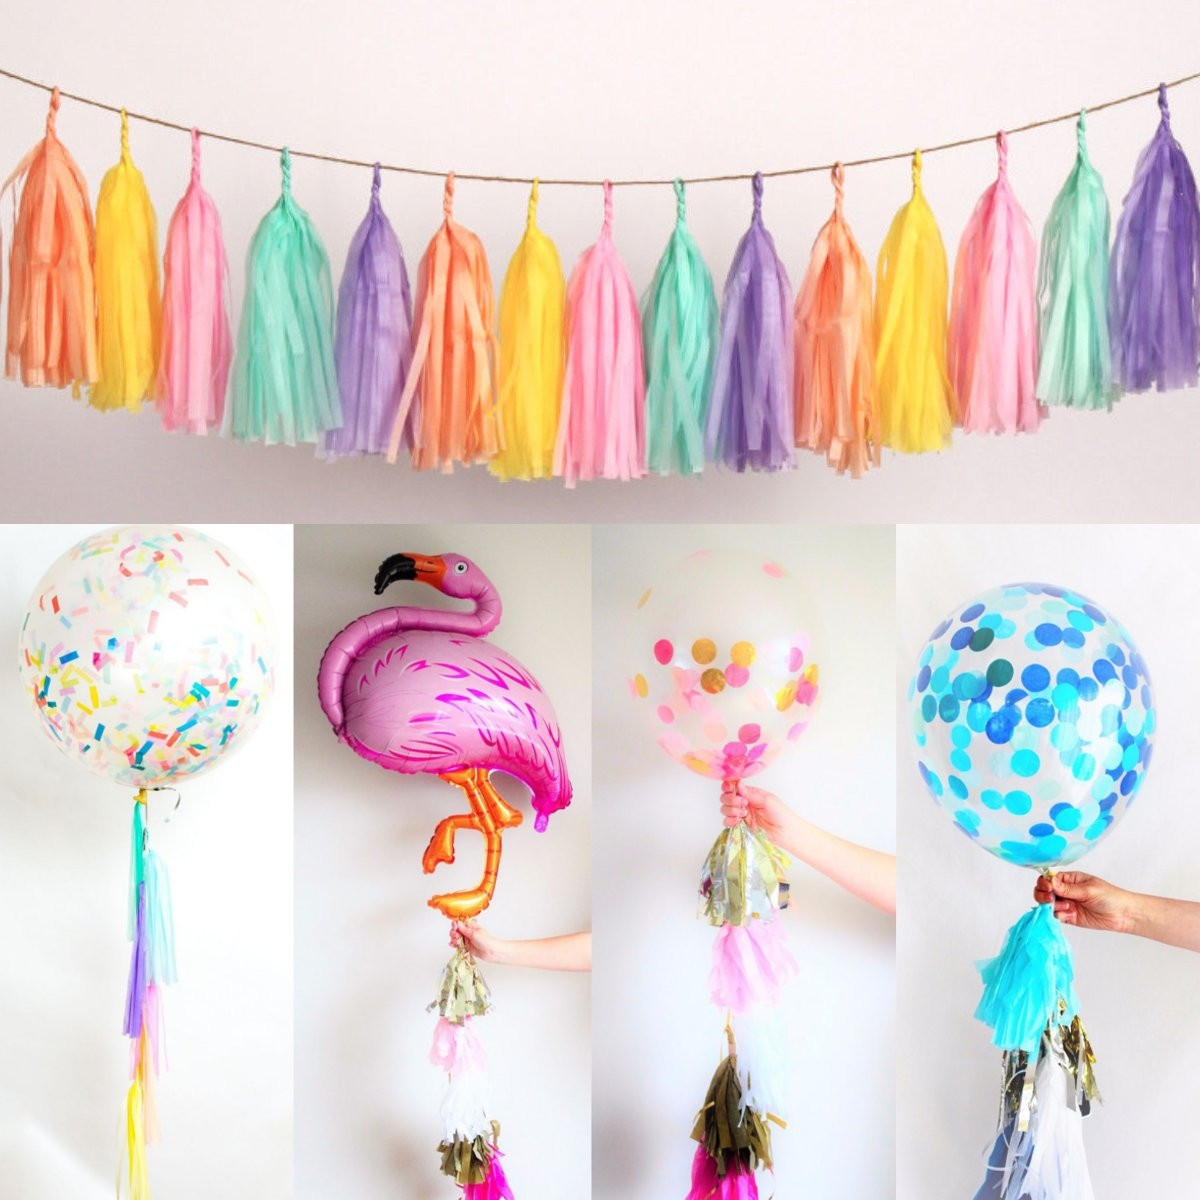 20PCS Tissue Paper Garlands Balloon Wedding Party Tassels Bunting Banner Decor